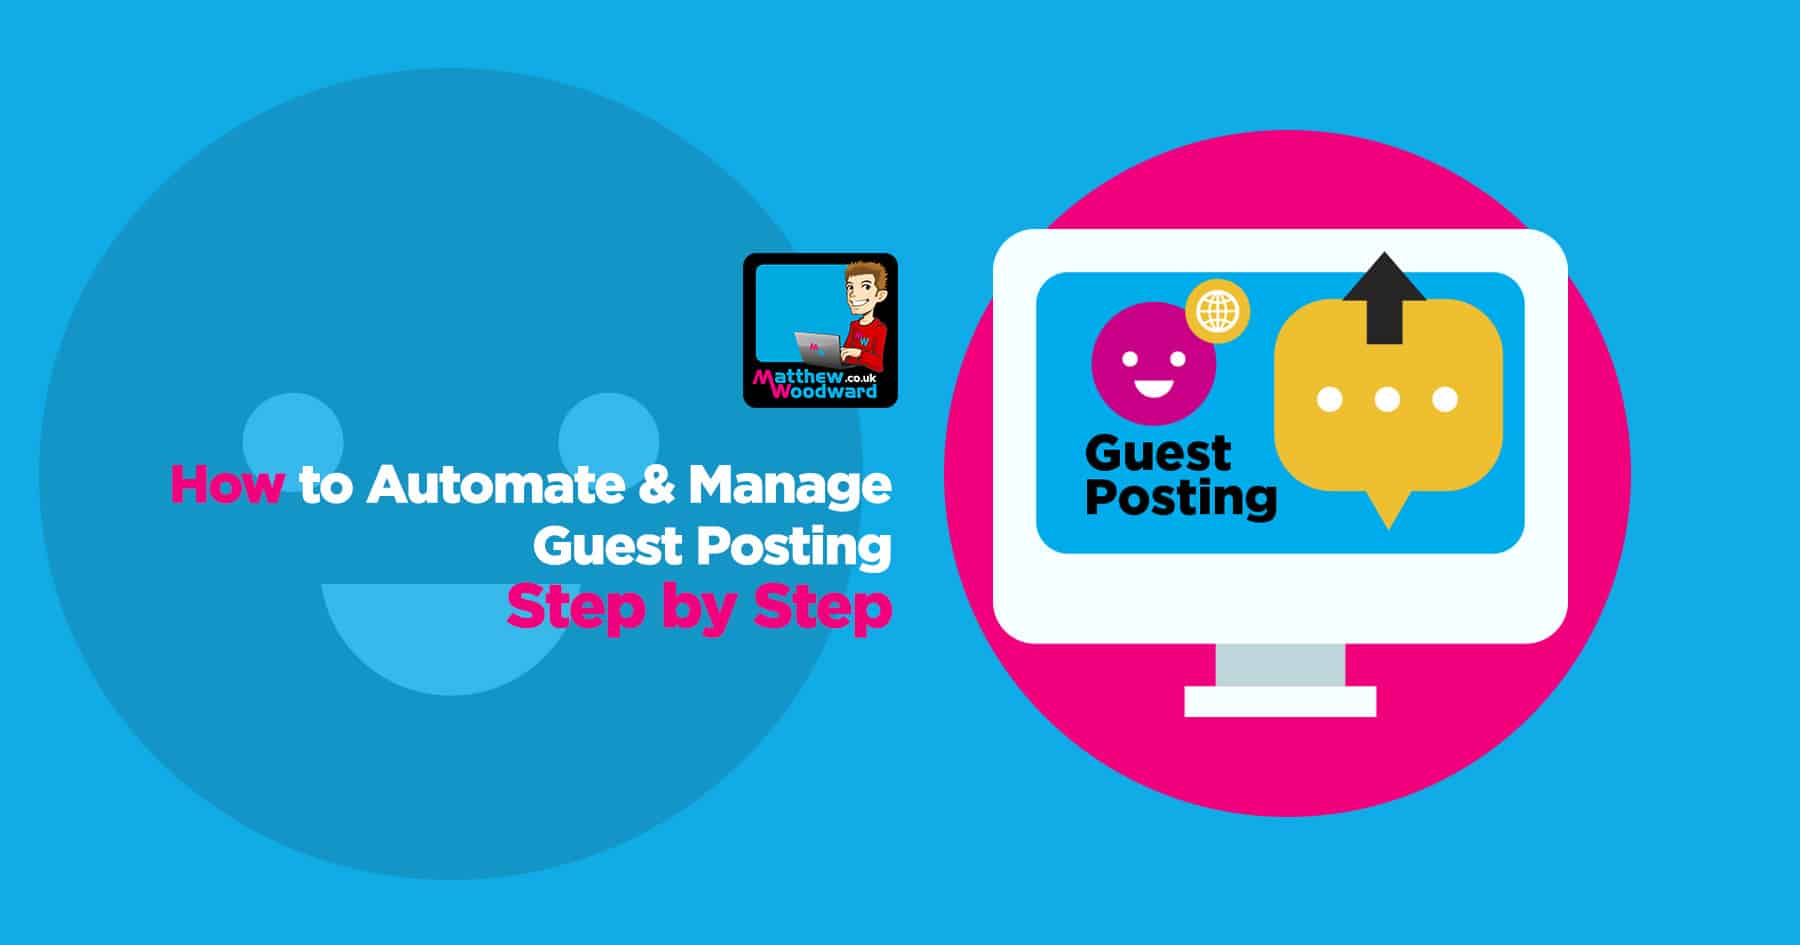 Take The Hard Work Out Of Guest Posting With Automation